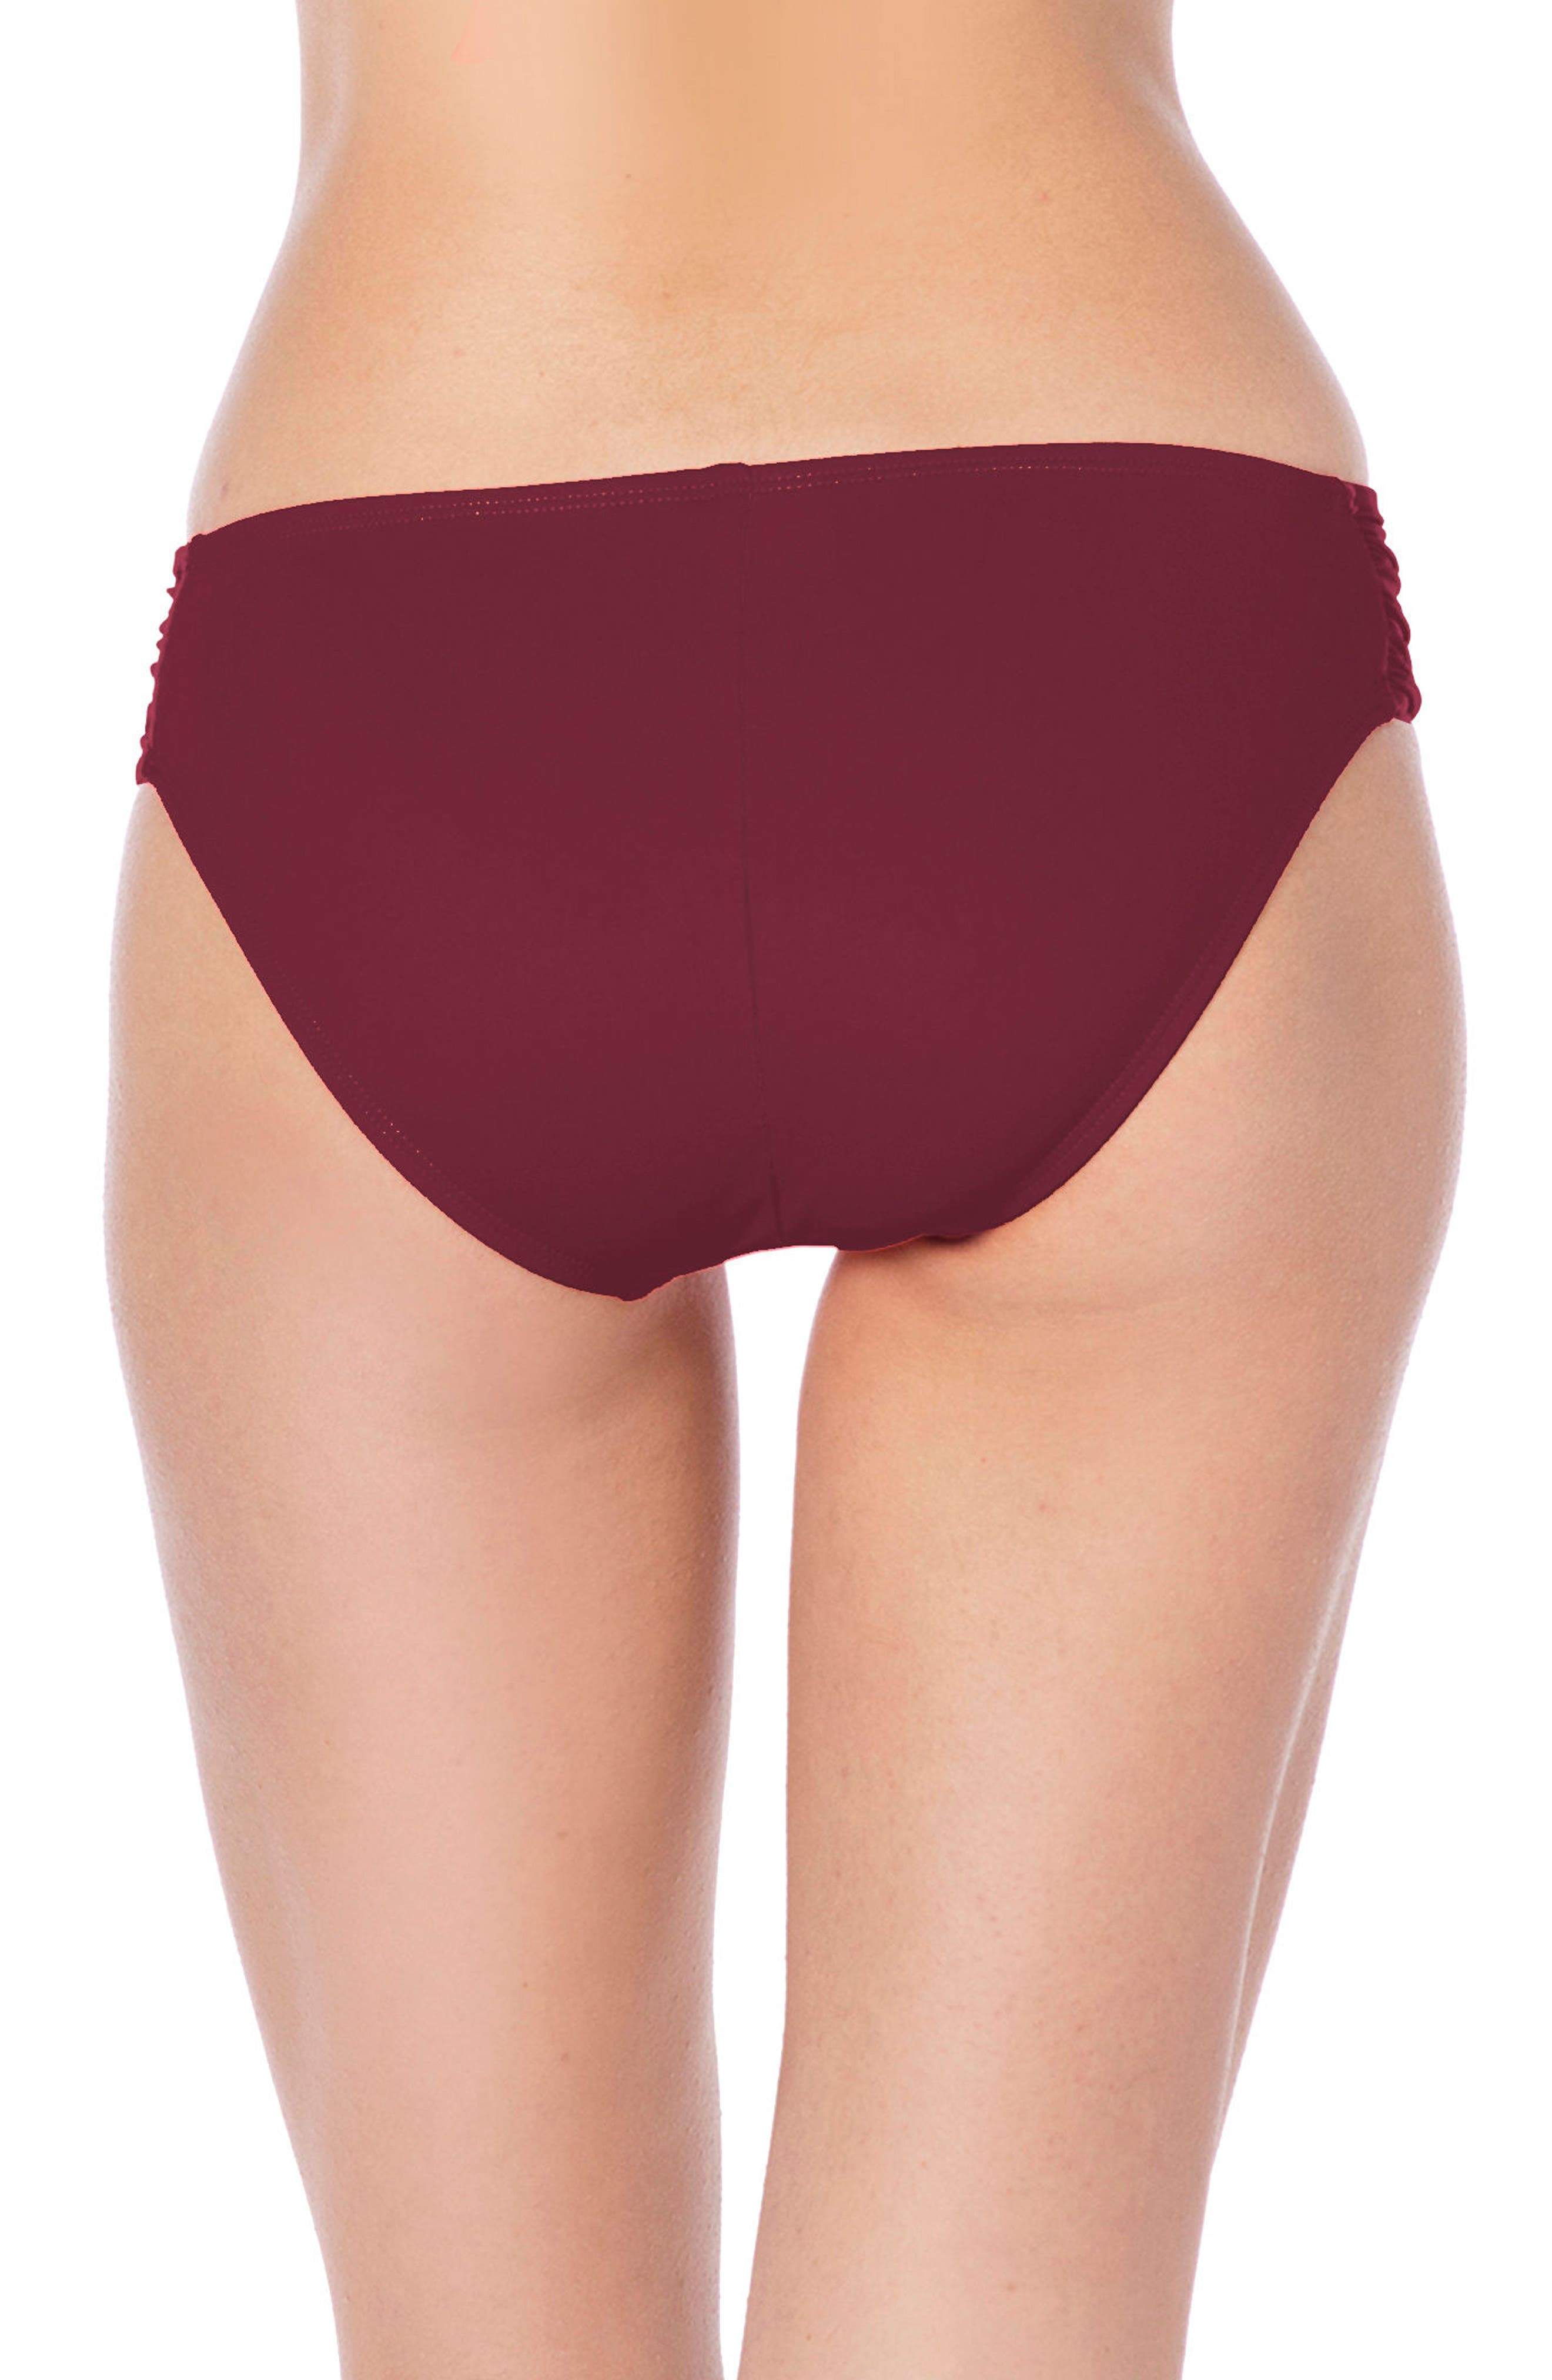 Island Goddess Hipster Bikini Bottoms,                             Alternate thumbnail 27, color,